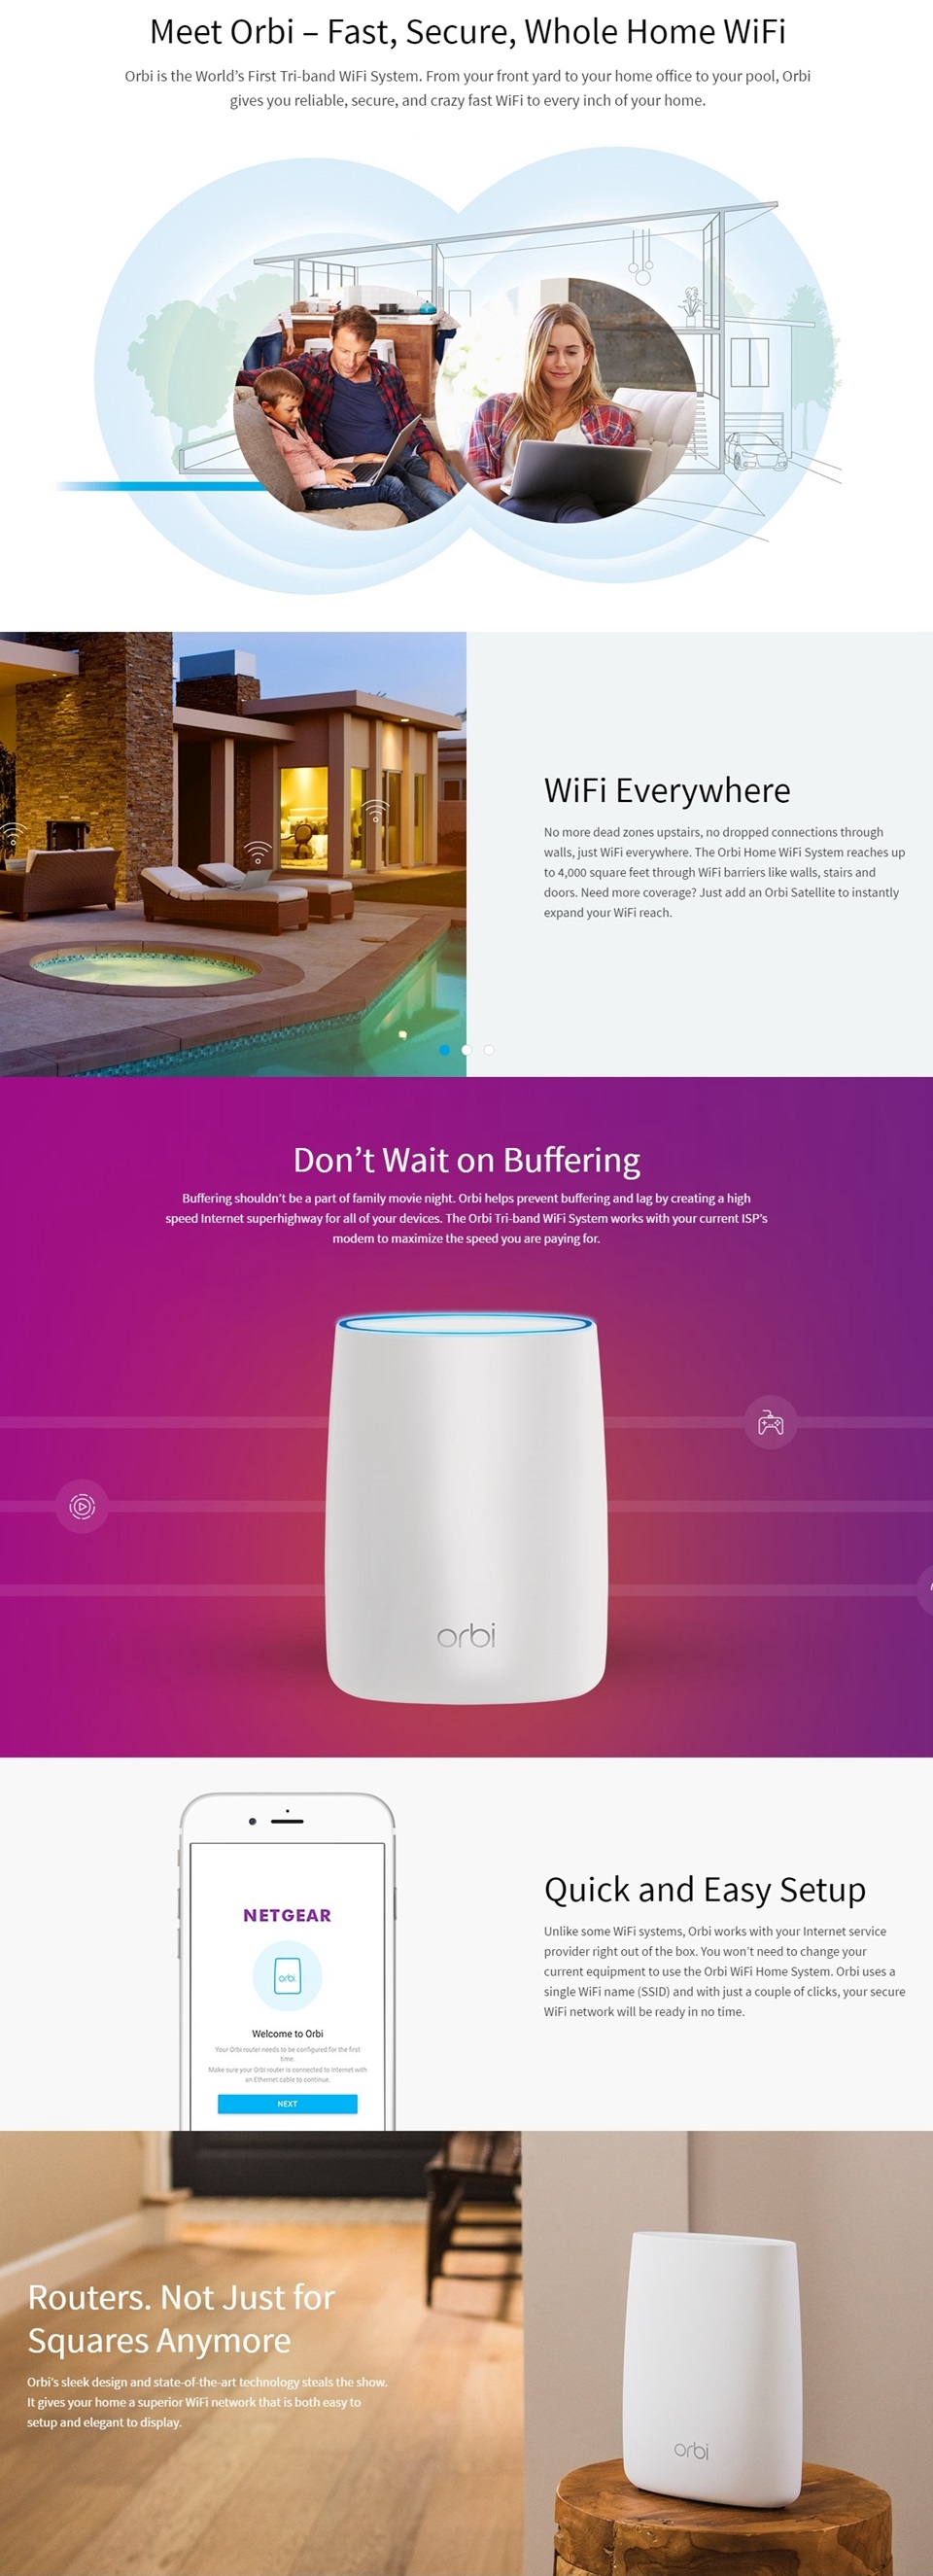 Details about Netgear Orbi AC2200 Whole Home Mesh WiFi Router Systems  Add-on Satellite Only